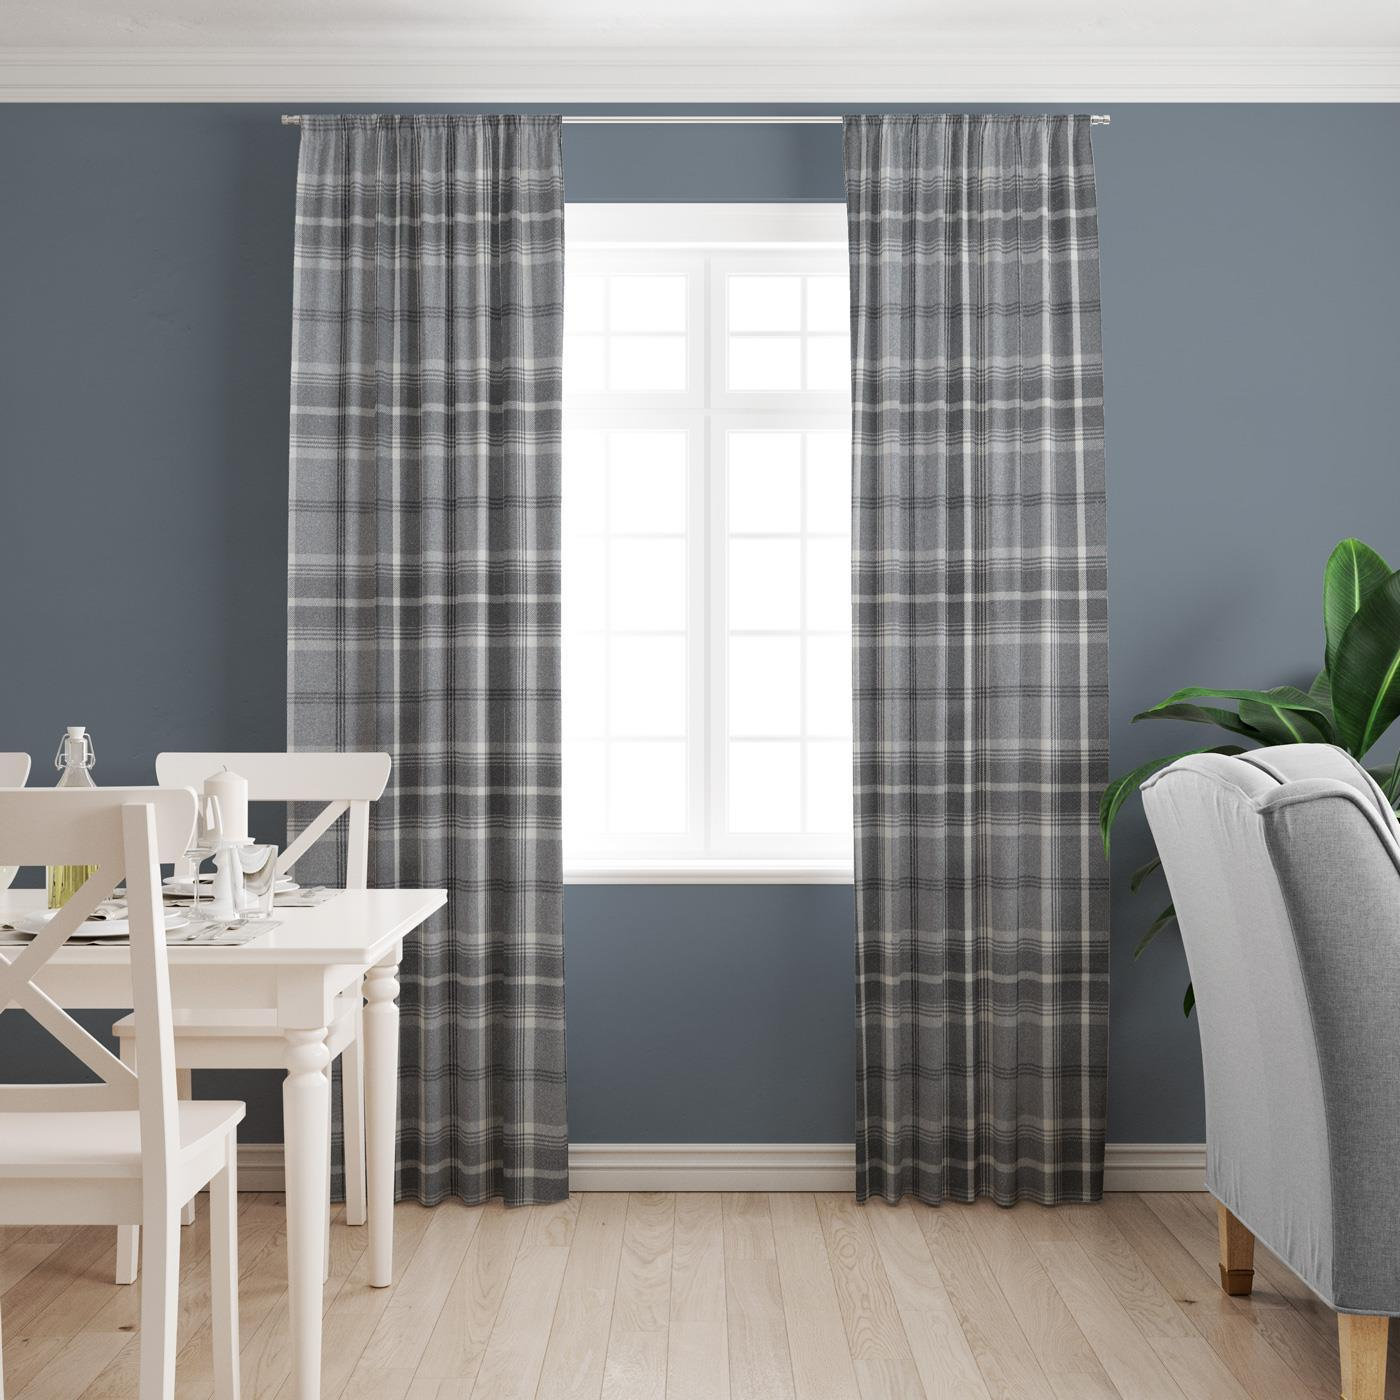 Hestia Dove Grey Made To Measure Curtains -  - Ideal Textiles